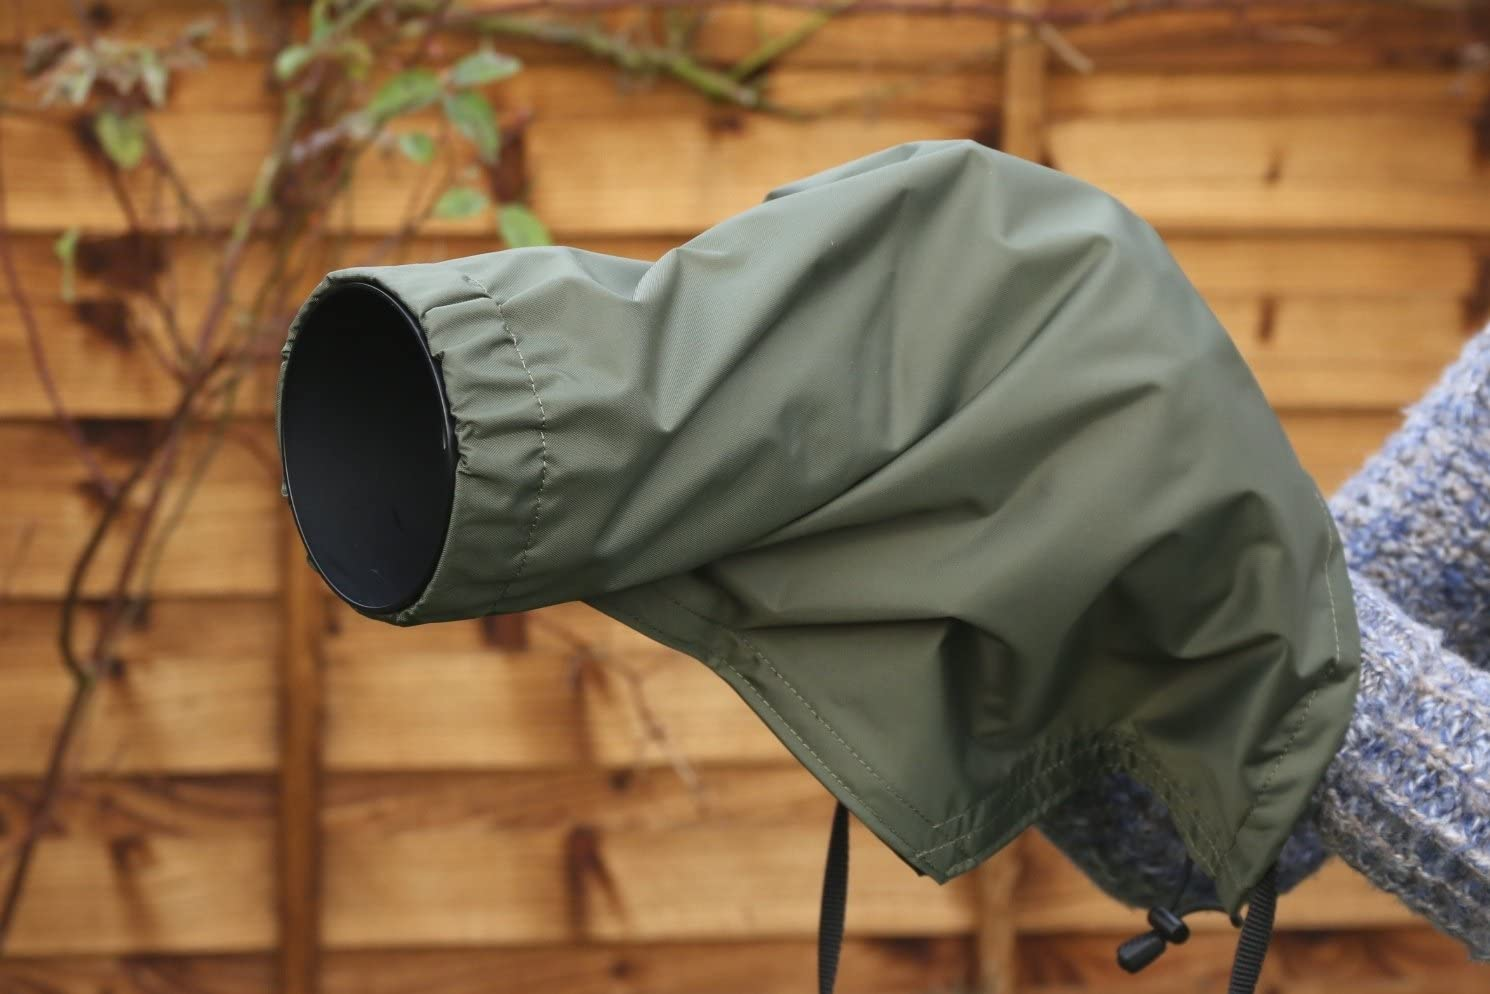 Black Rain//Dust Camera Lens Cover For Nikon 70-300 F4.5-5.6 VR,OLIVE Green or BLACK Nylon Waterproof /& Carry Pouch